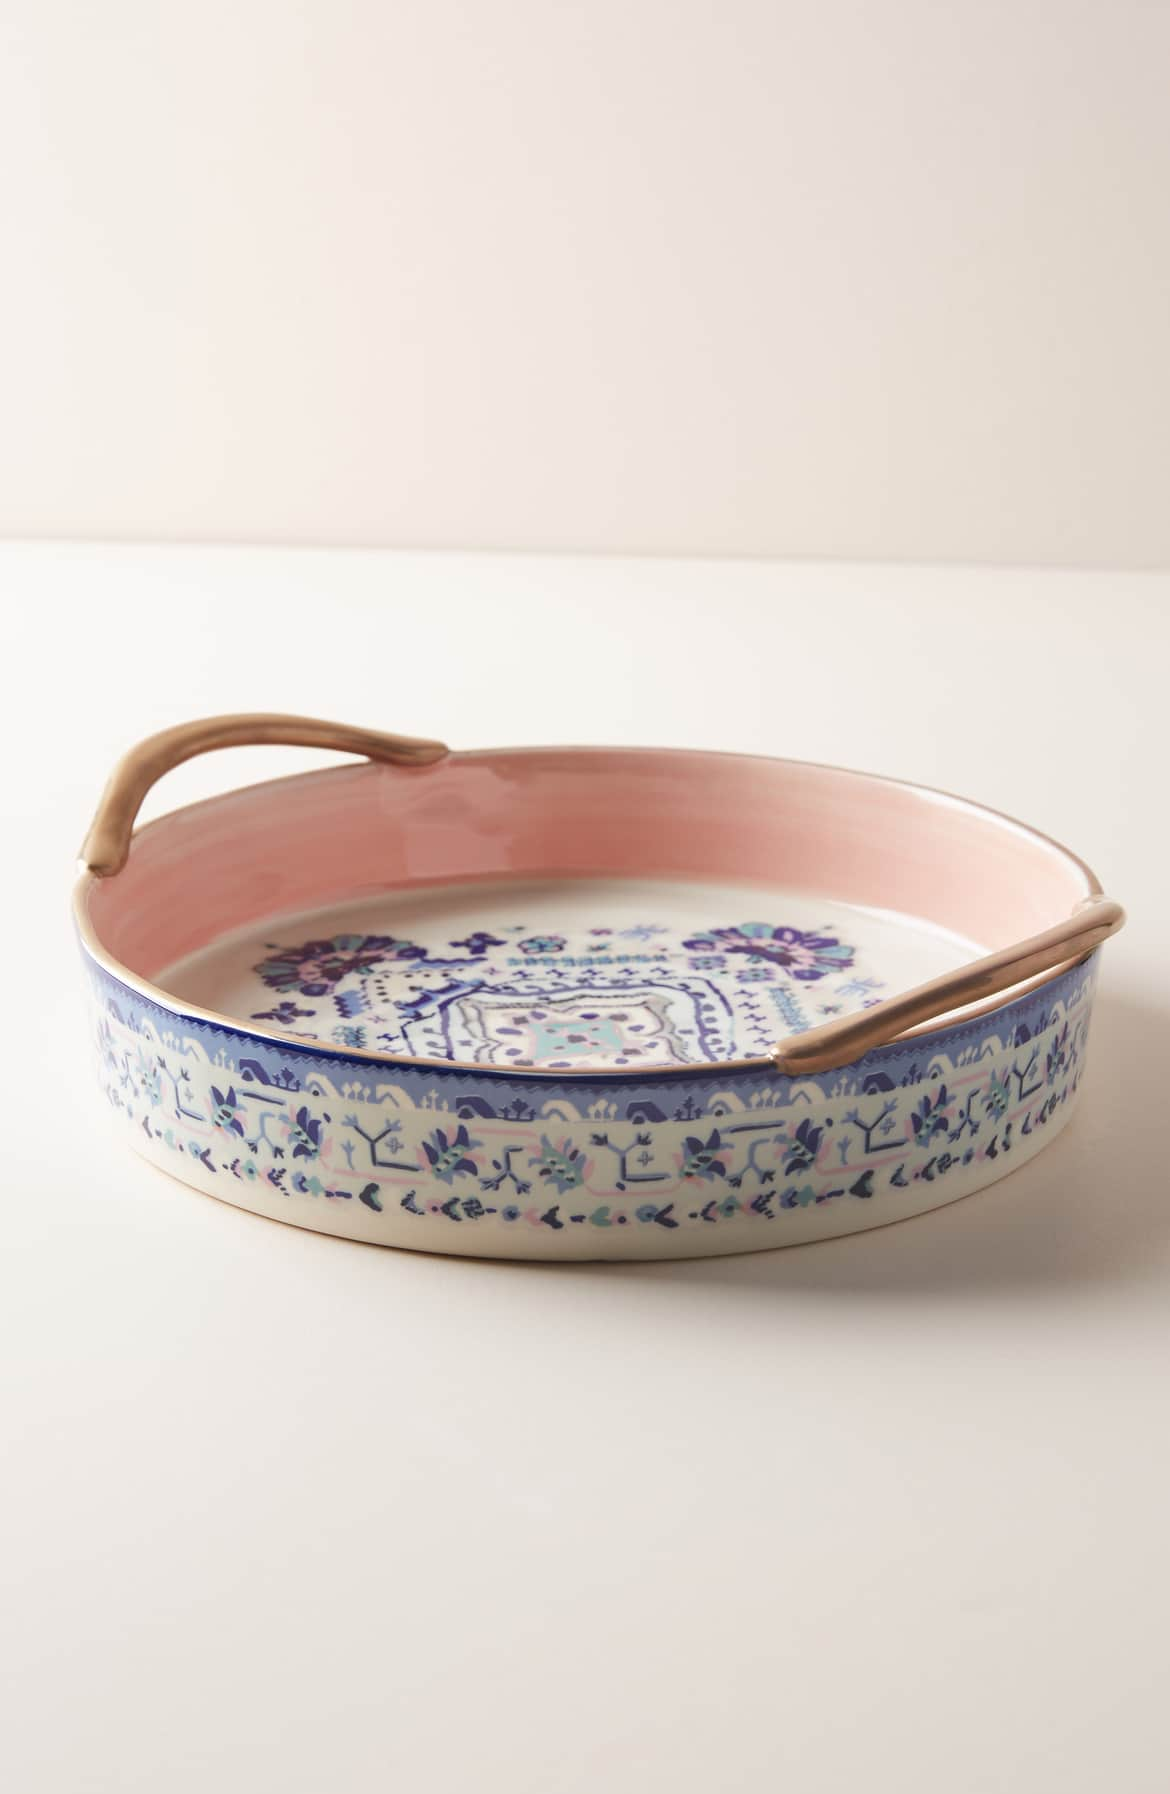 Anthropologie Lilia Pie Dish